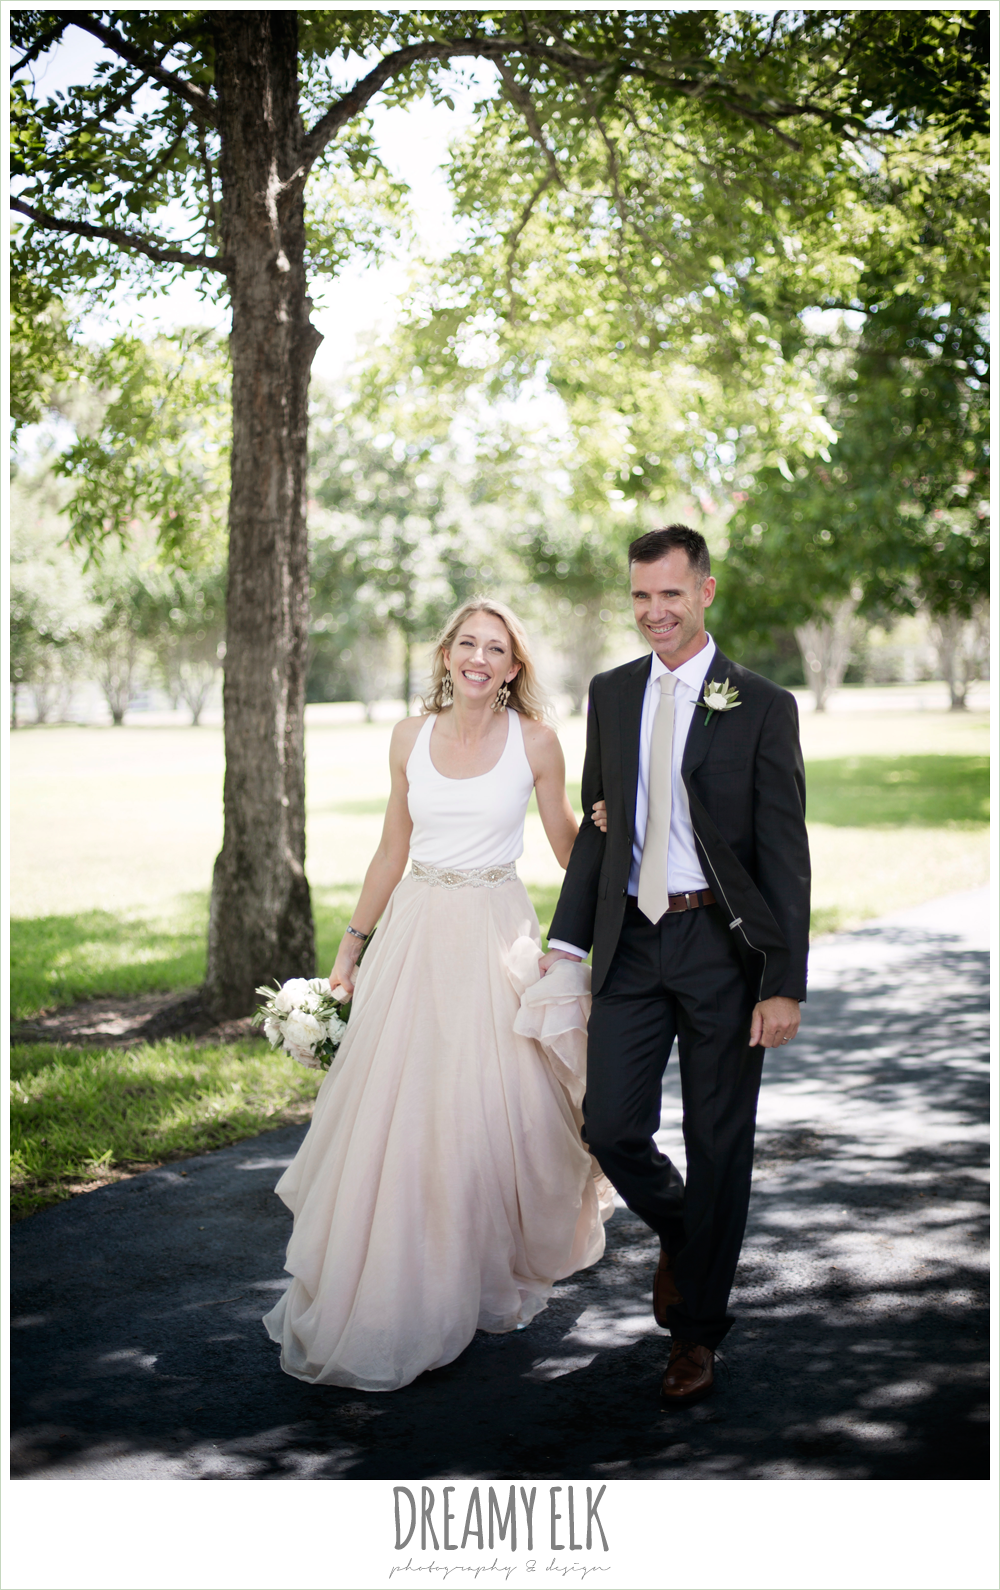 outdoor bride and groom photo, hugo boss groom's suit, southern protocol bridal boutique, haute bride belt, carol hannah kensington halter and blush skirt, july summer morning wedding, ashelynn manor, magnolia, texas {dreamy elk photography and design}